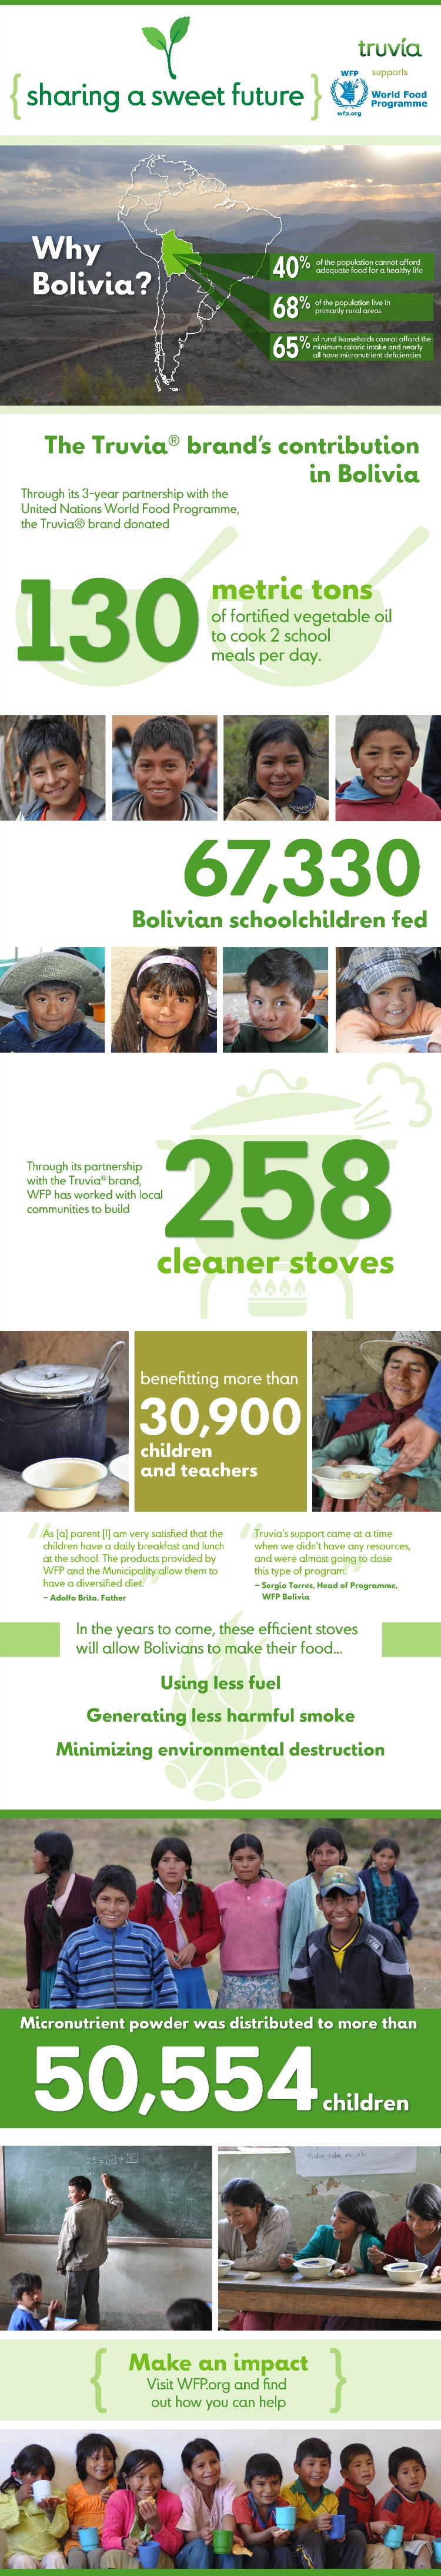 Helping-Bolivia-Poverty-Sharing-A-Sweet-Future-Truvia